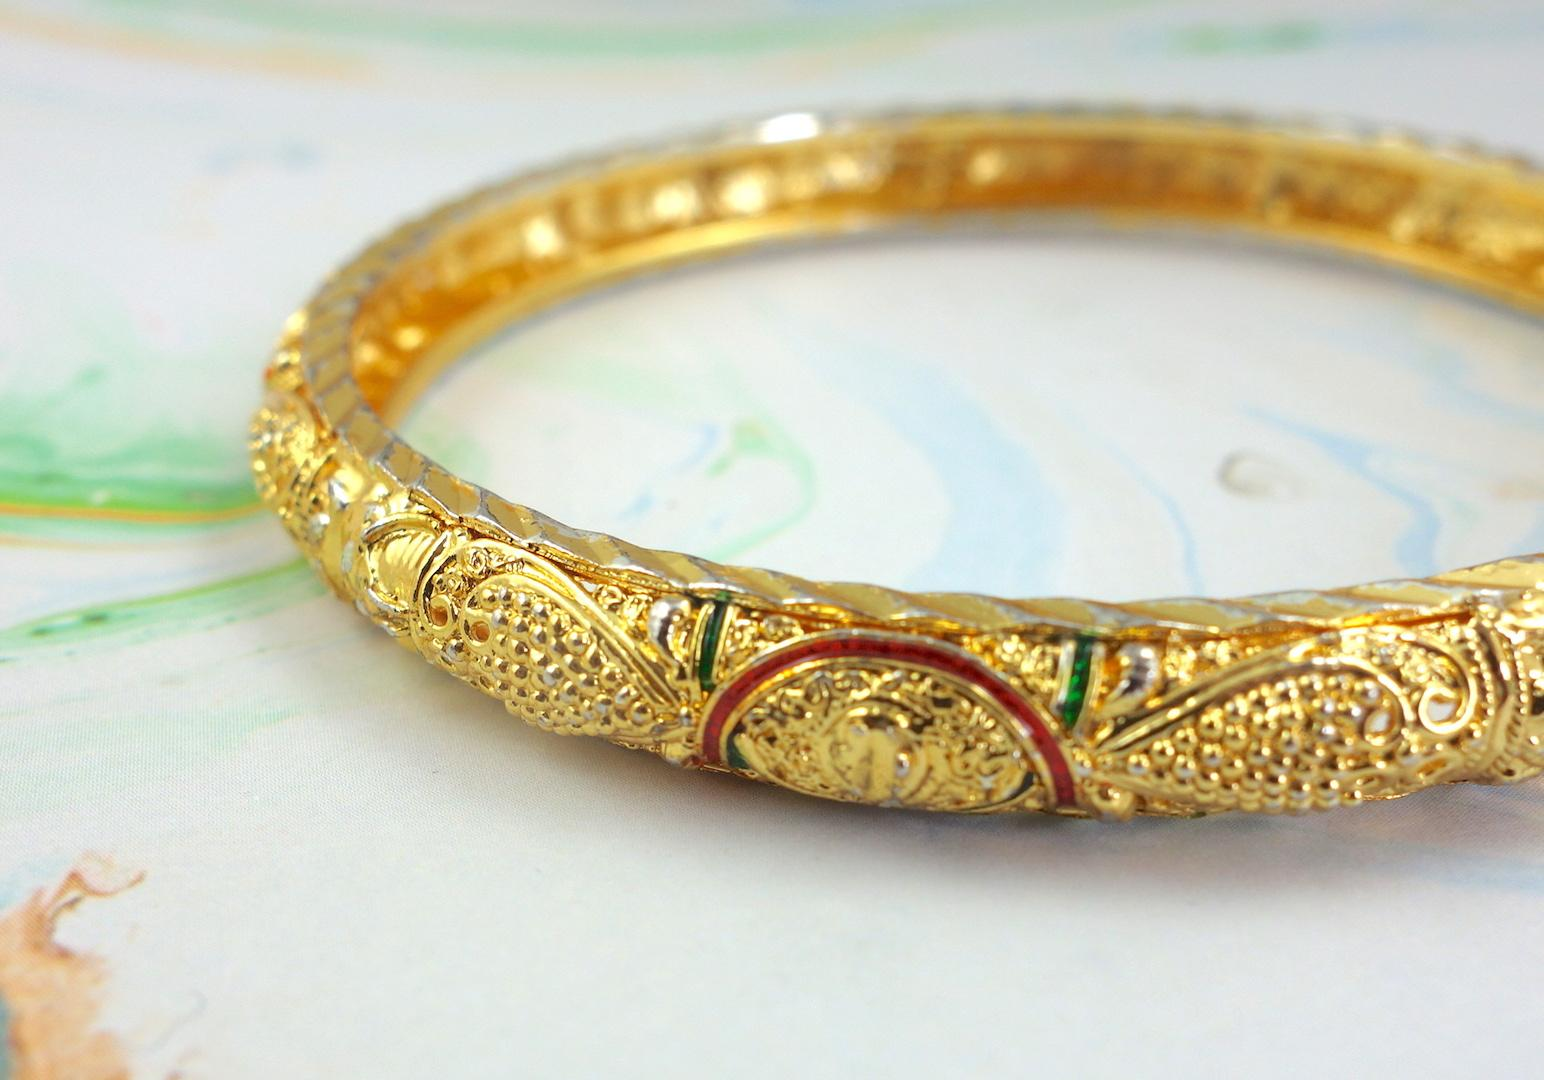 bracelet_india_roulotte_or_ouvrage_bangle_boheme_vintage_macro